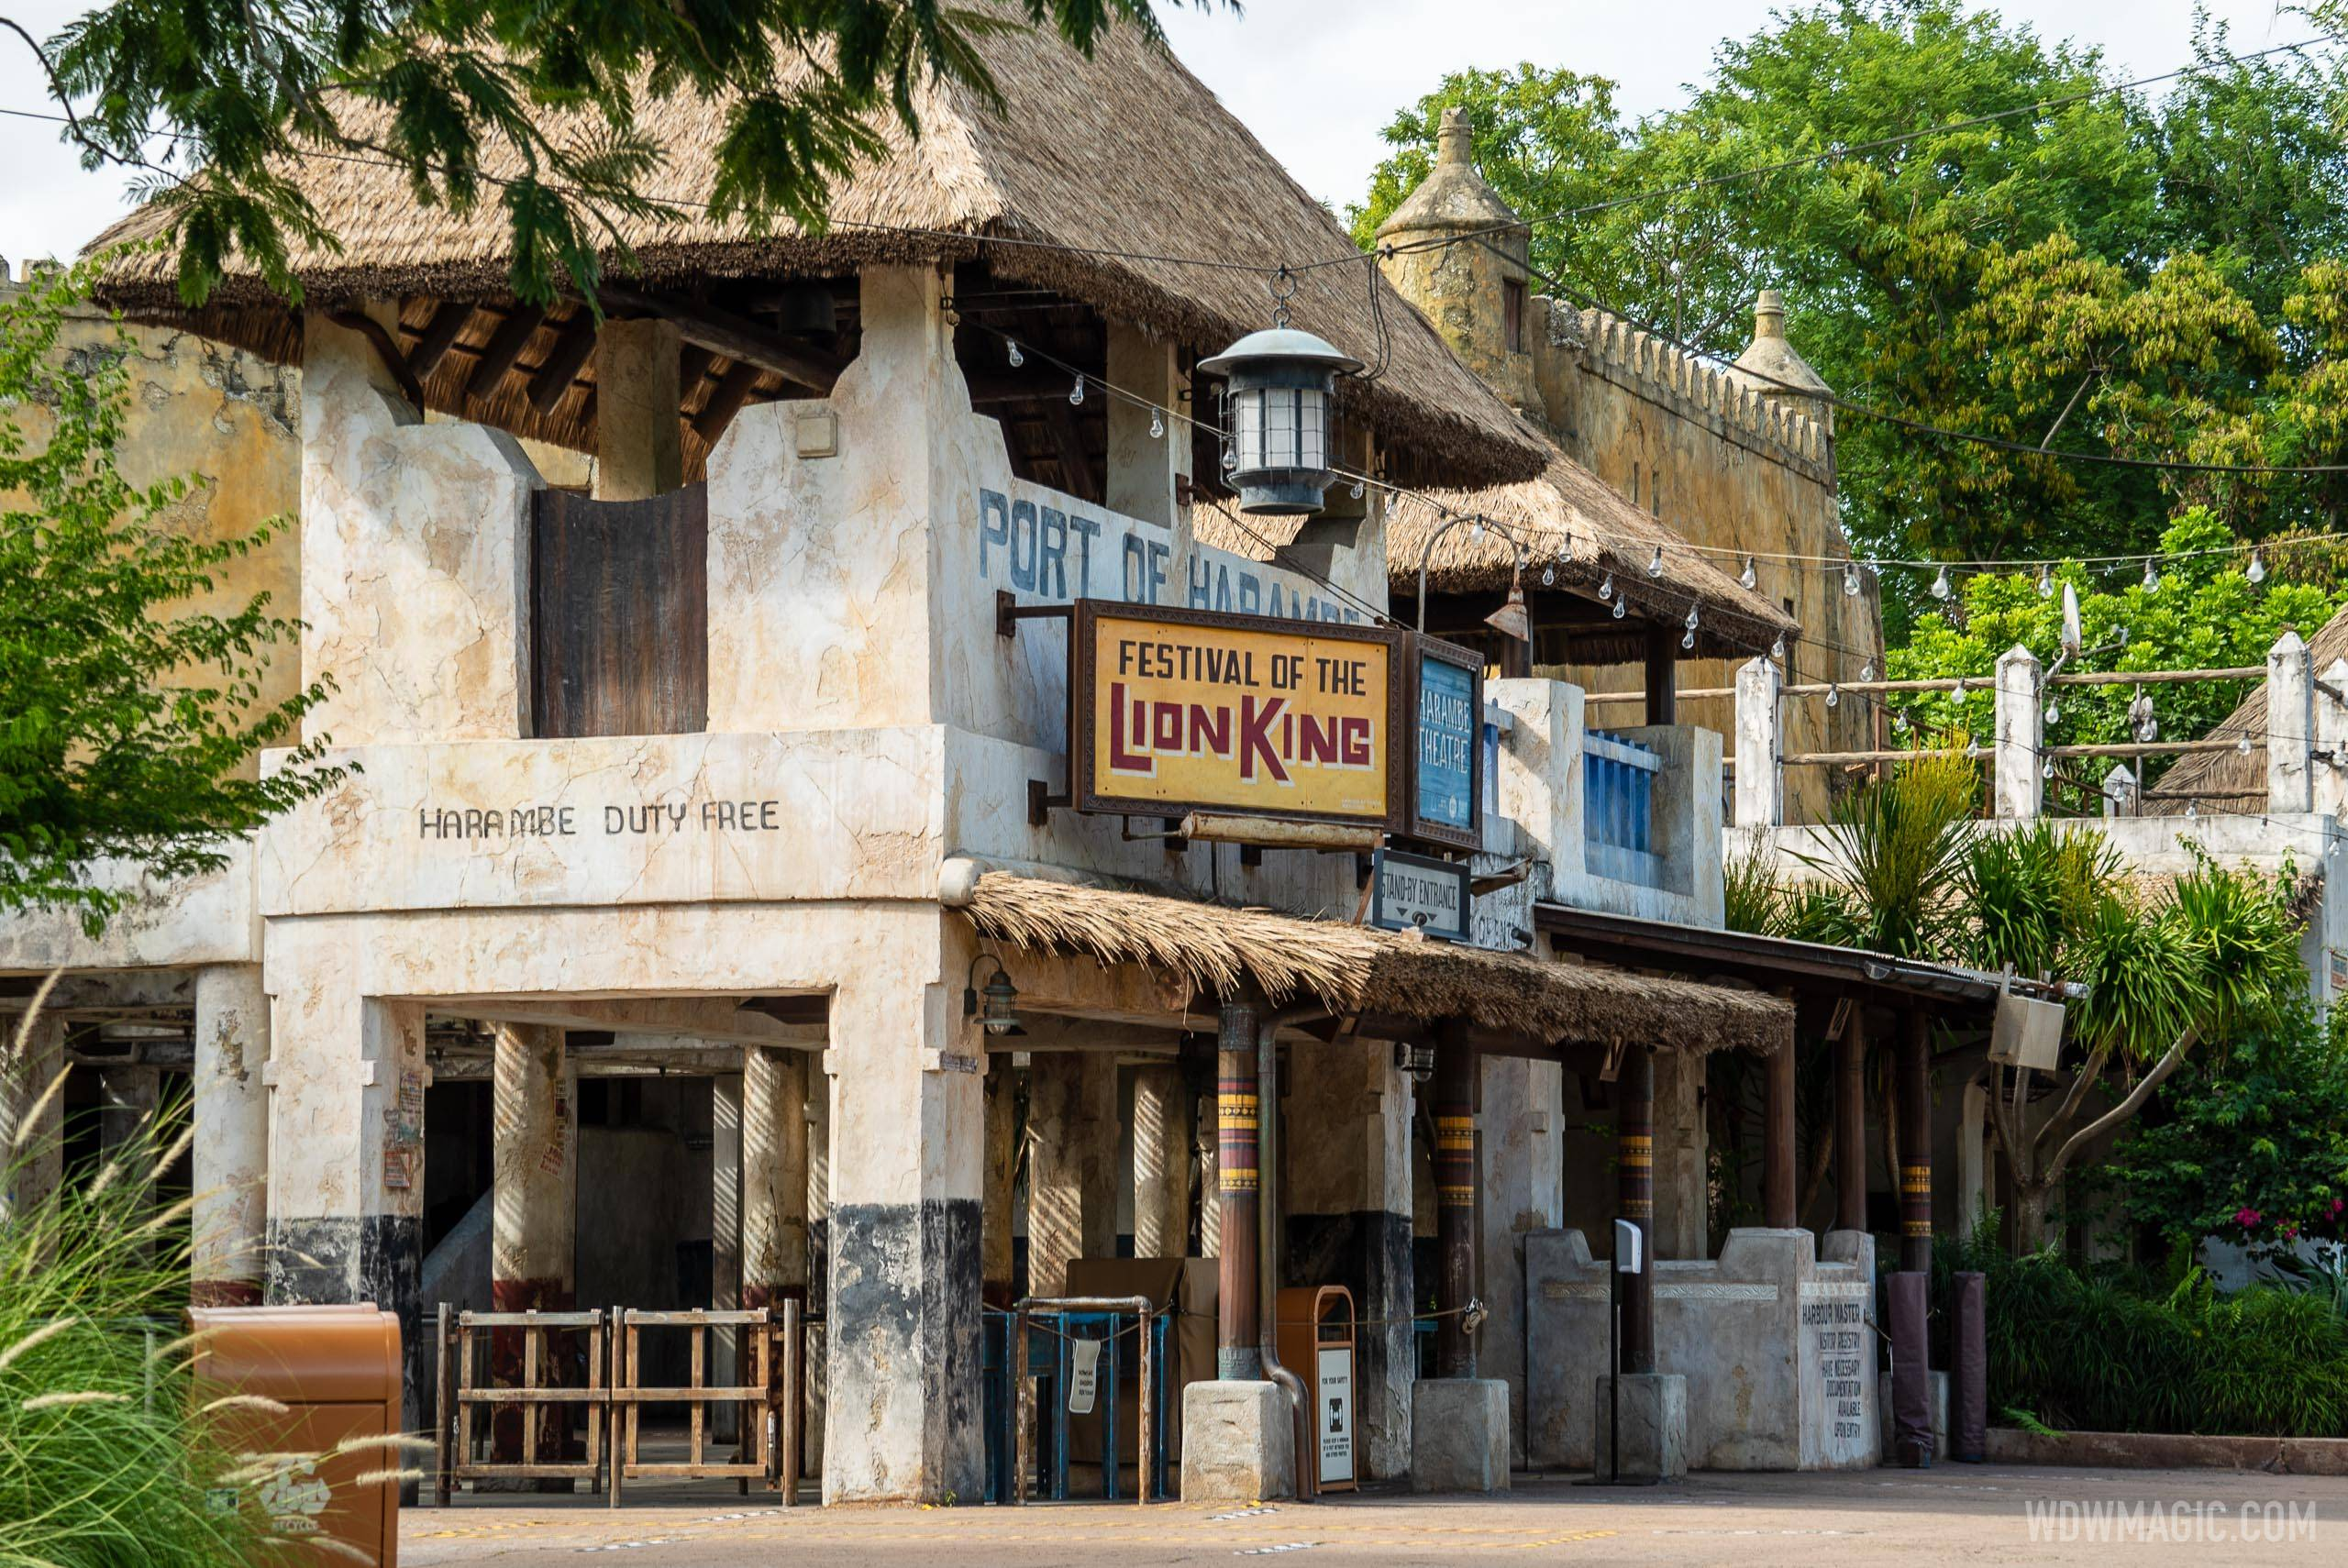 Festival of the Lion King overview